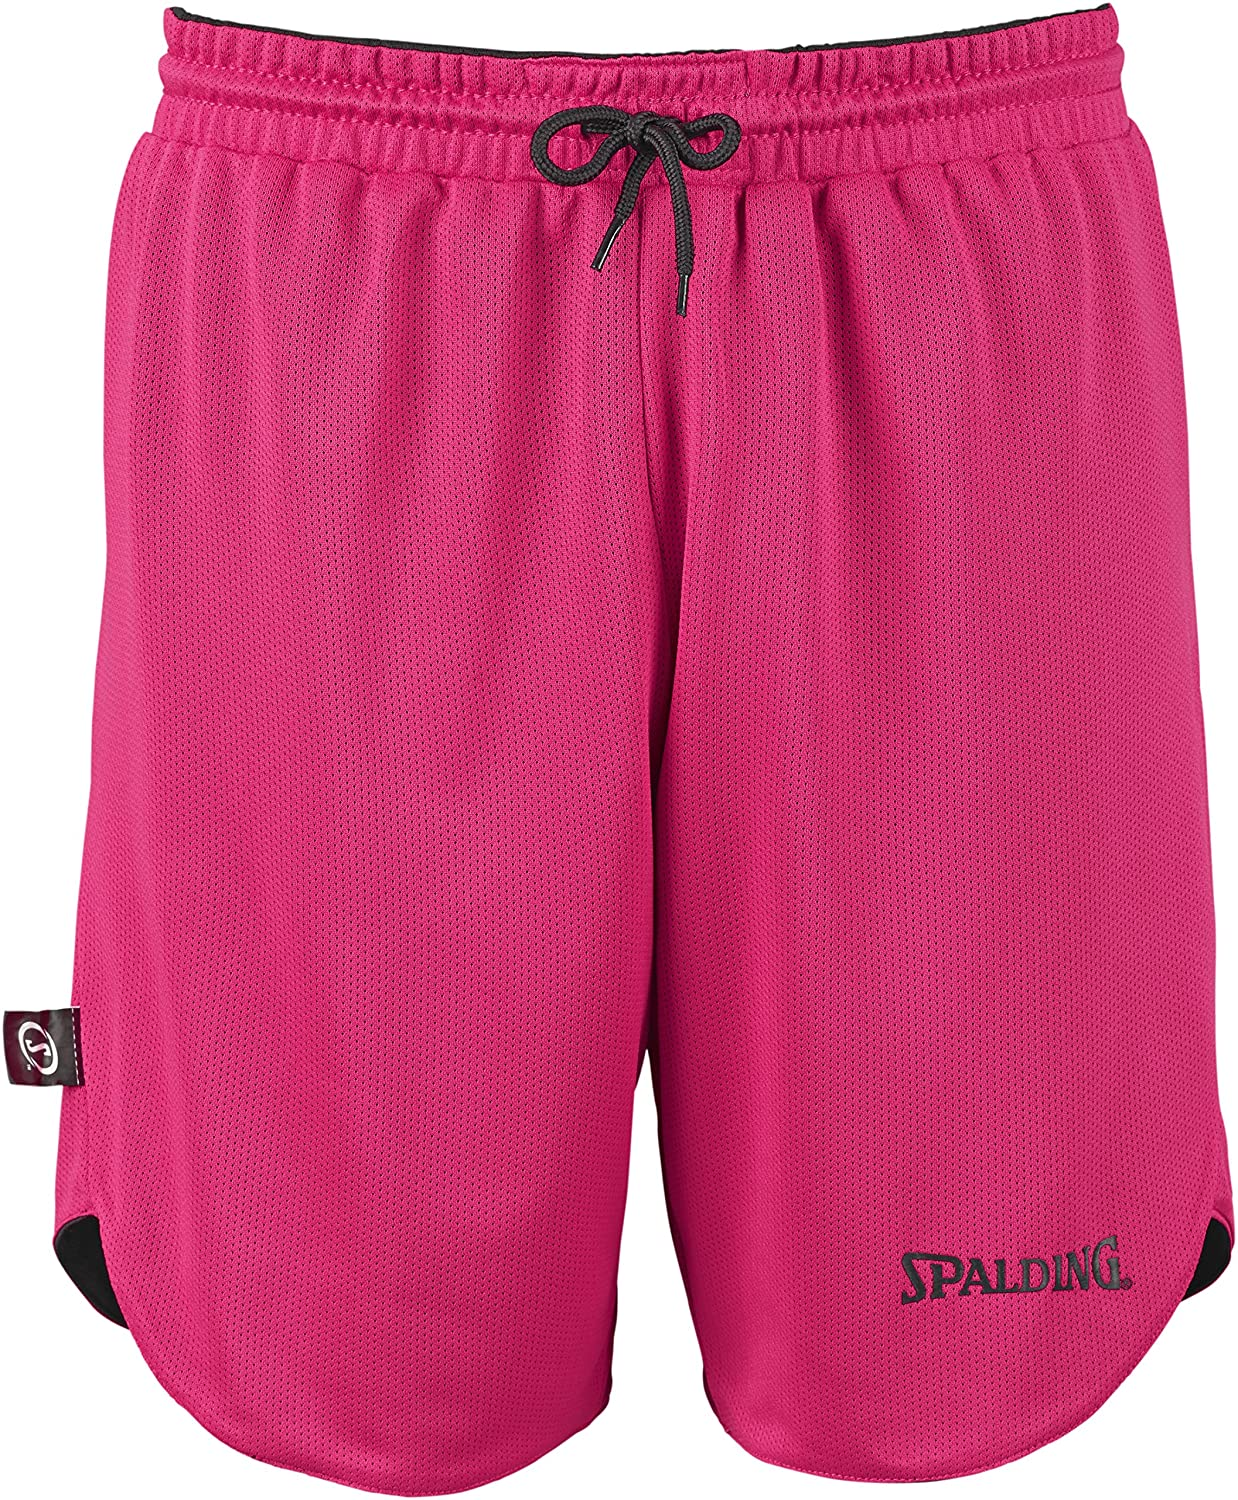 Spalding Childrens Doubleface Kids Jersey /& Shorts Set